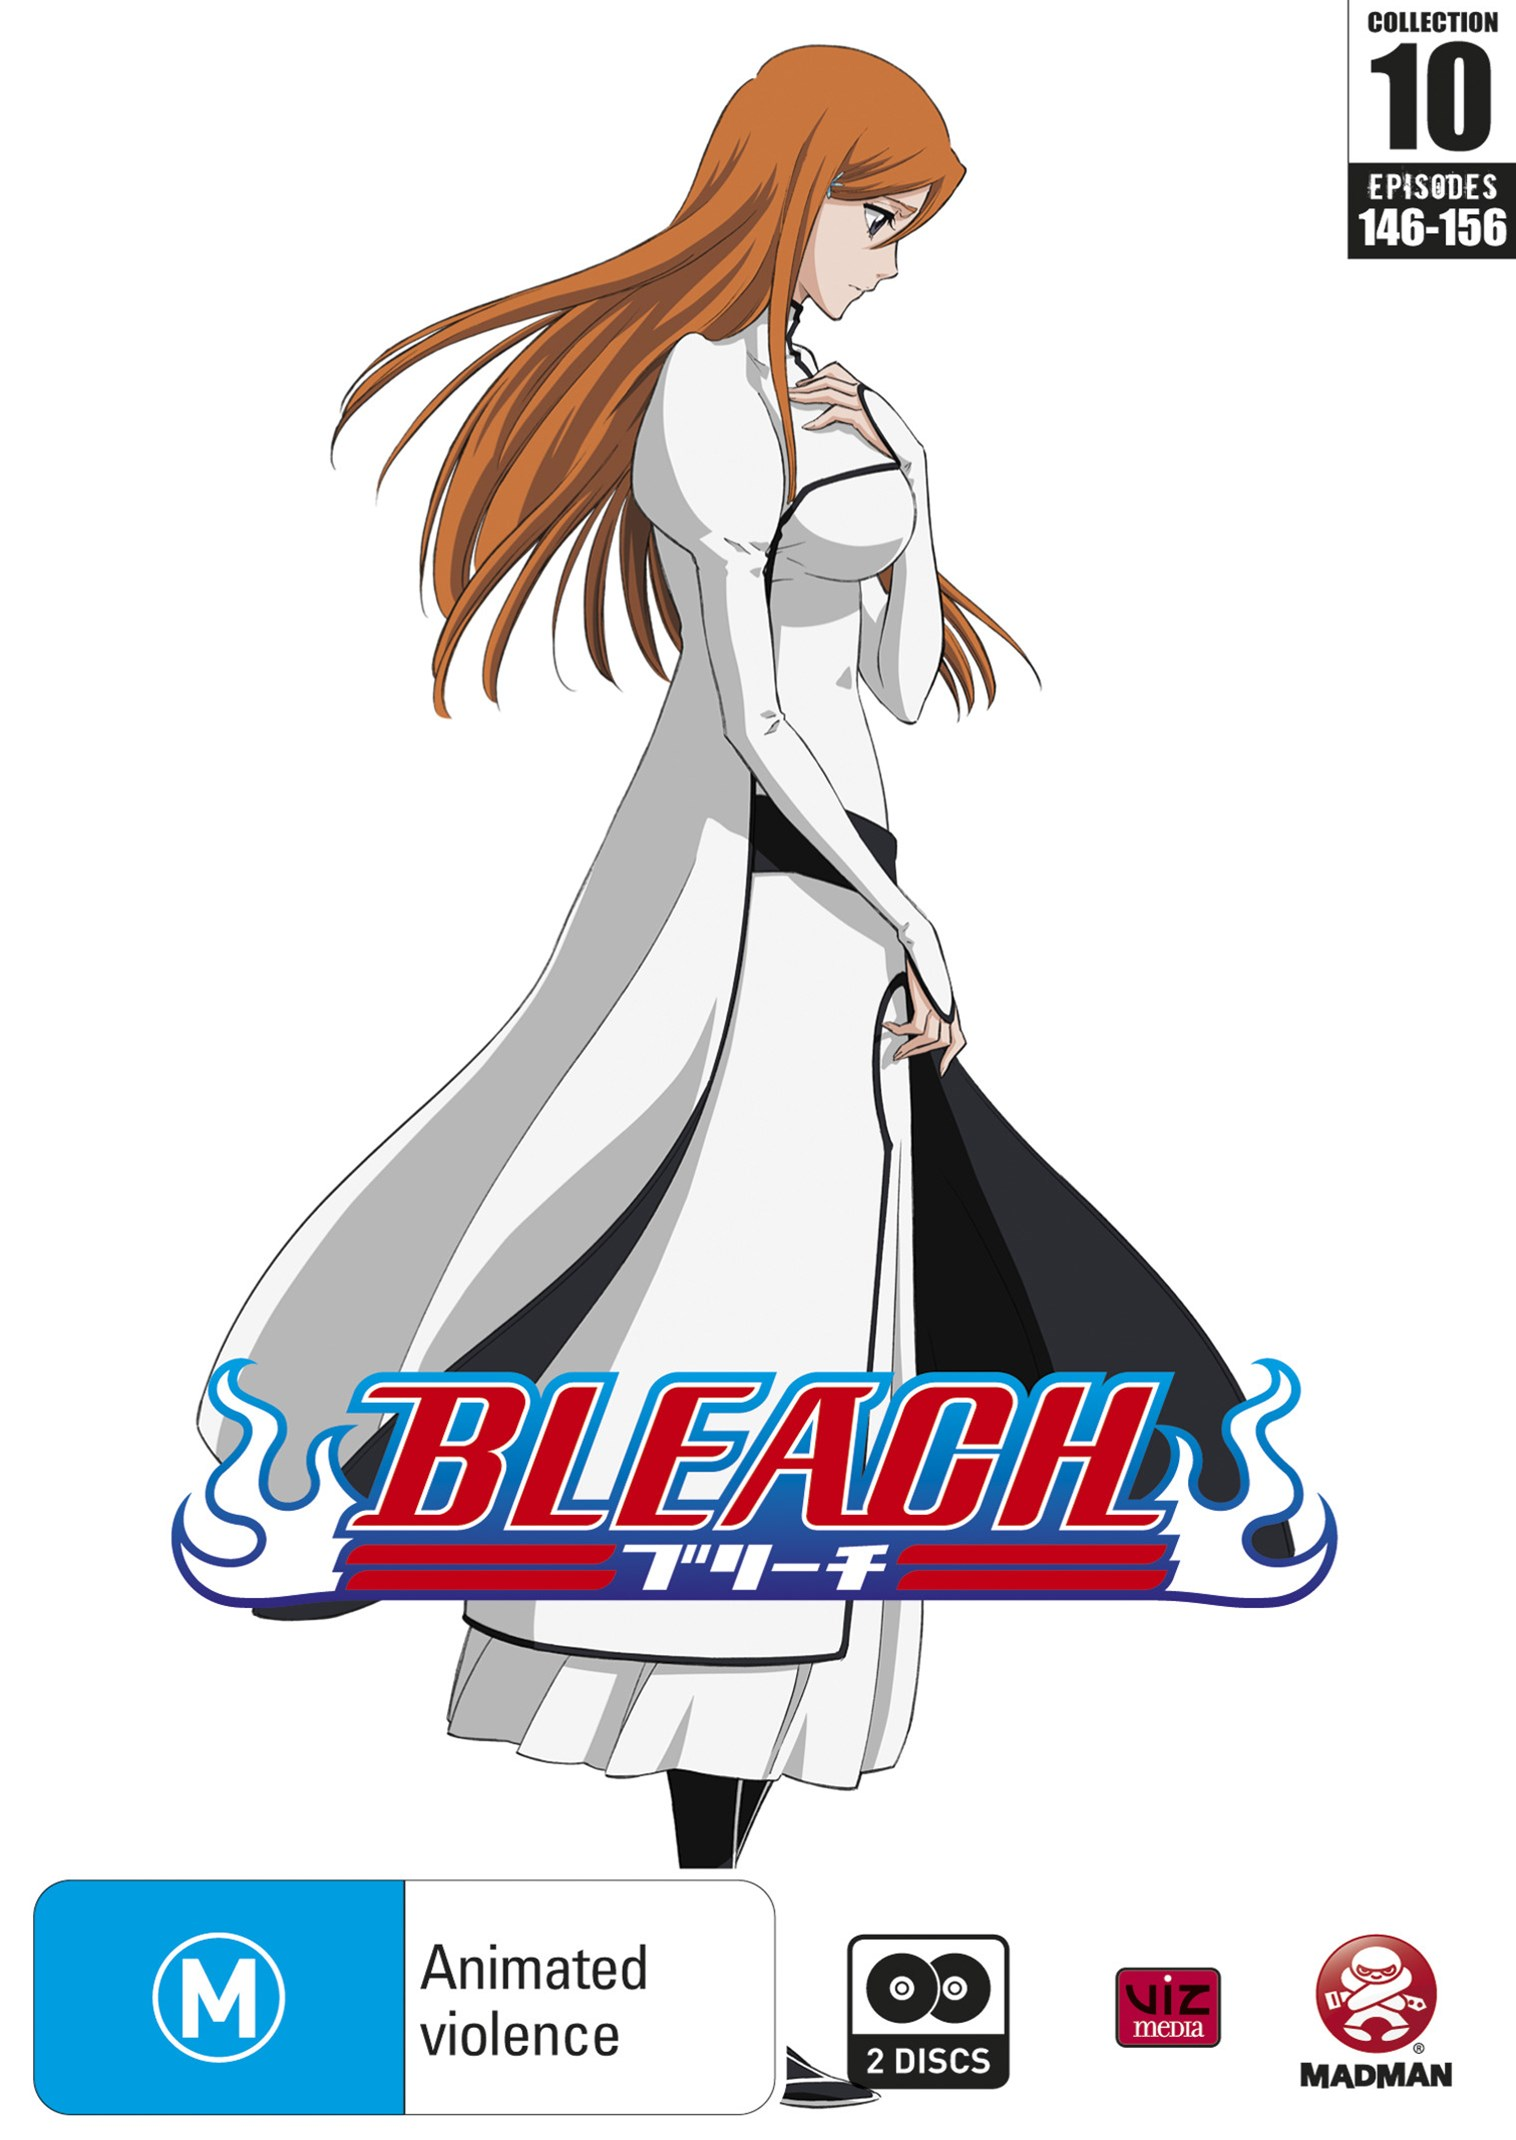 Bleach: Collection 10 (Eps 146-156)